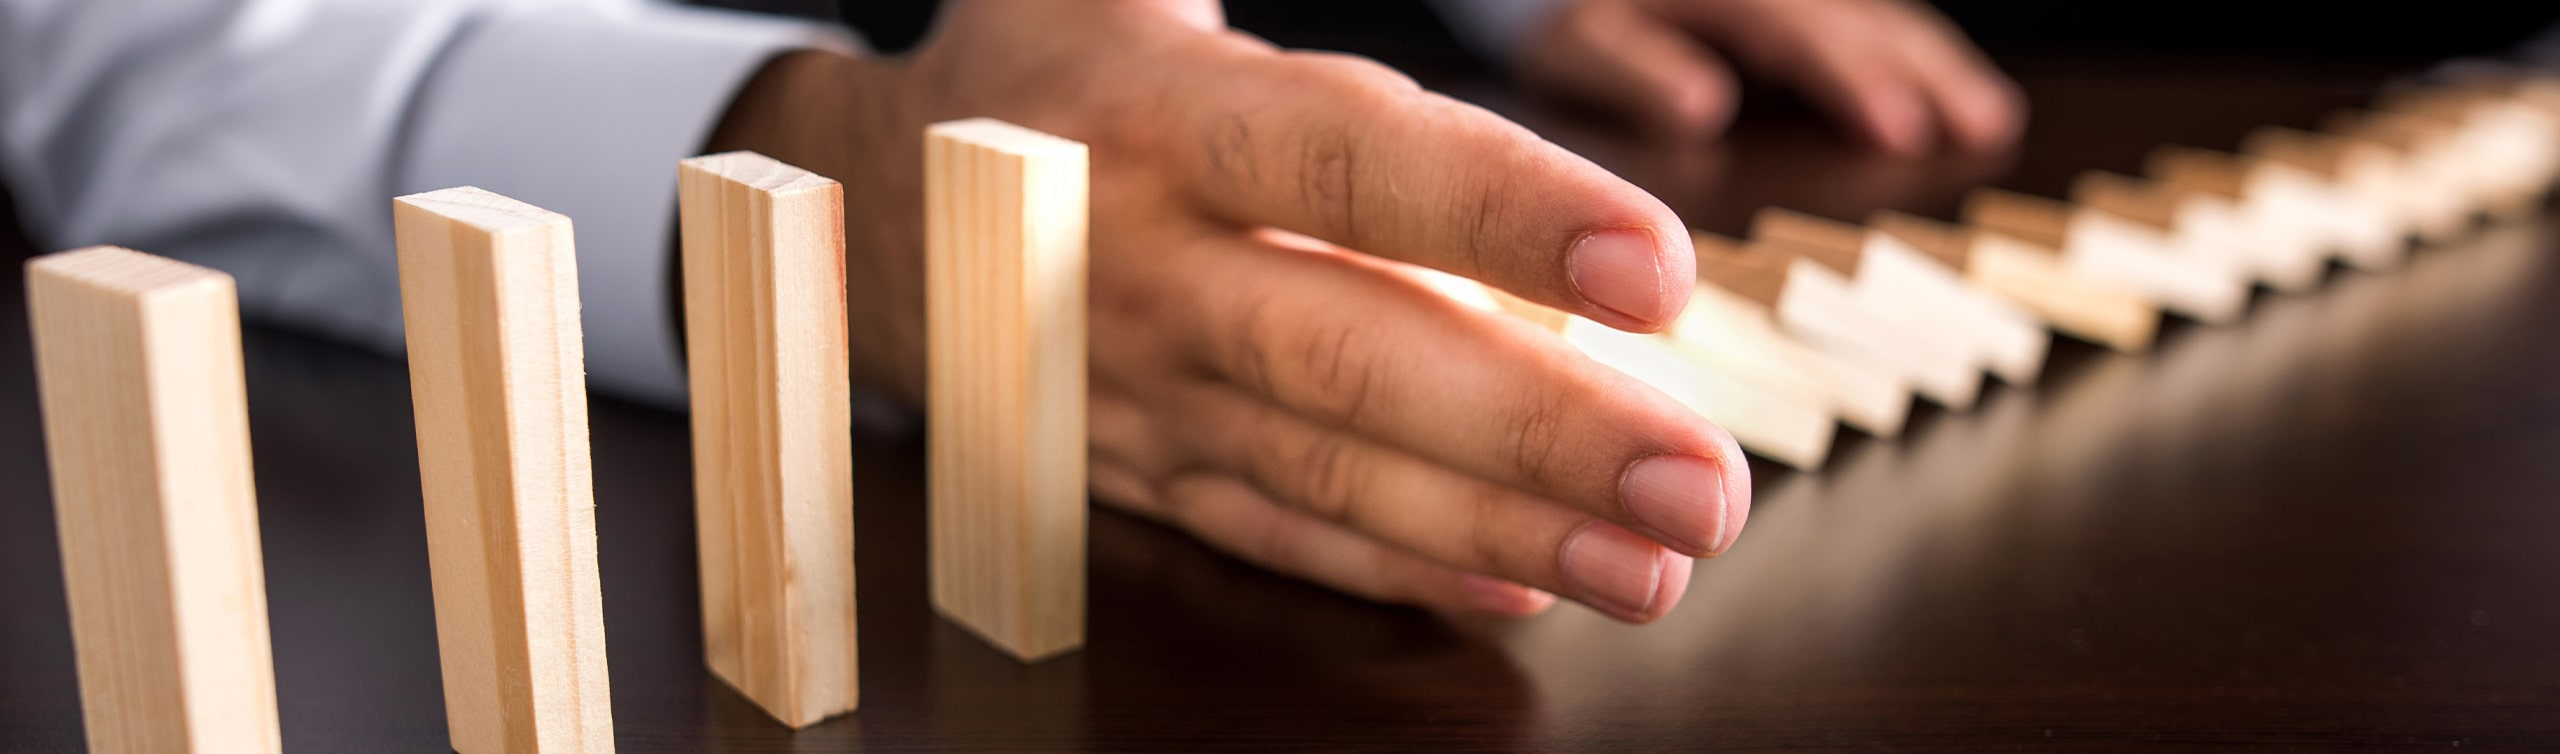 man holds out hand to stop blocks from falling, concept of asset protection